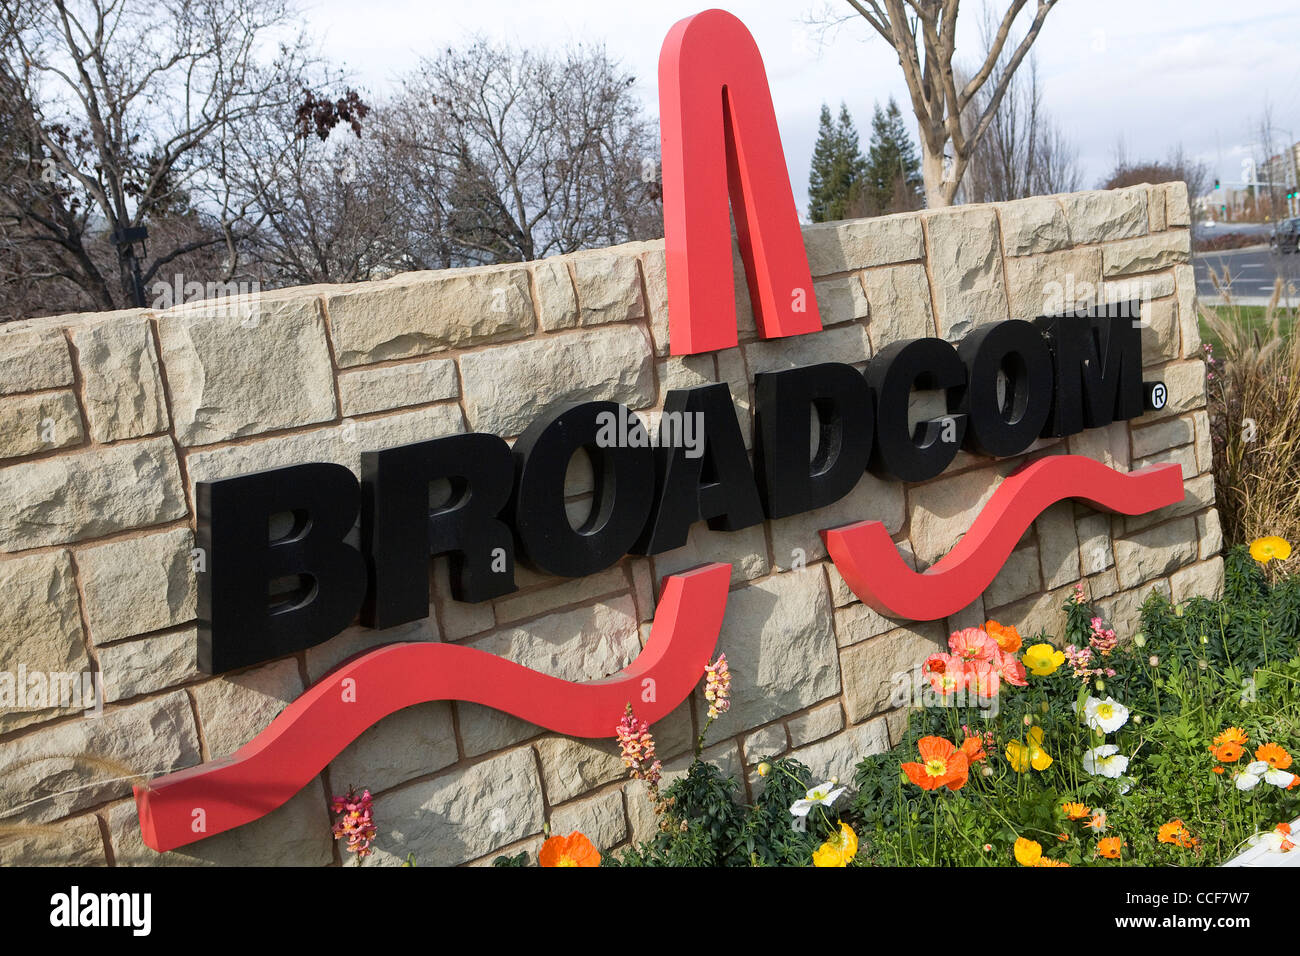 An office building occupied by Broadcom Stock Photo: 42132083 - Alamy